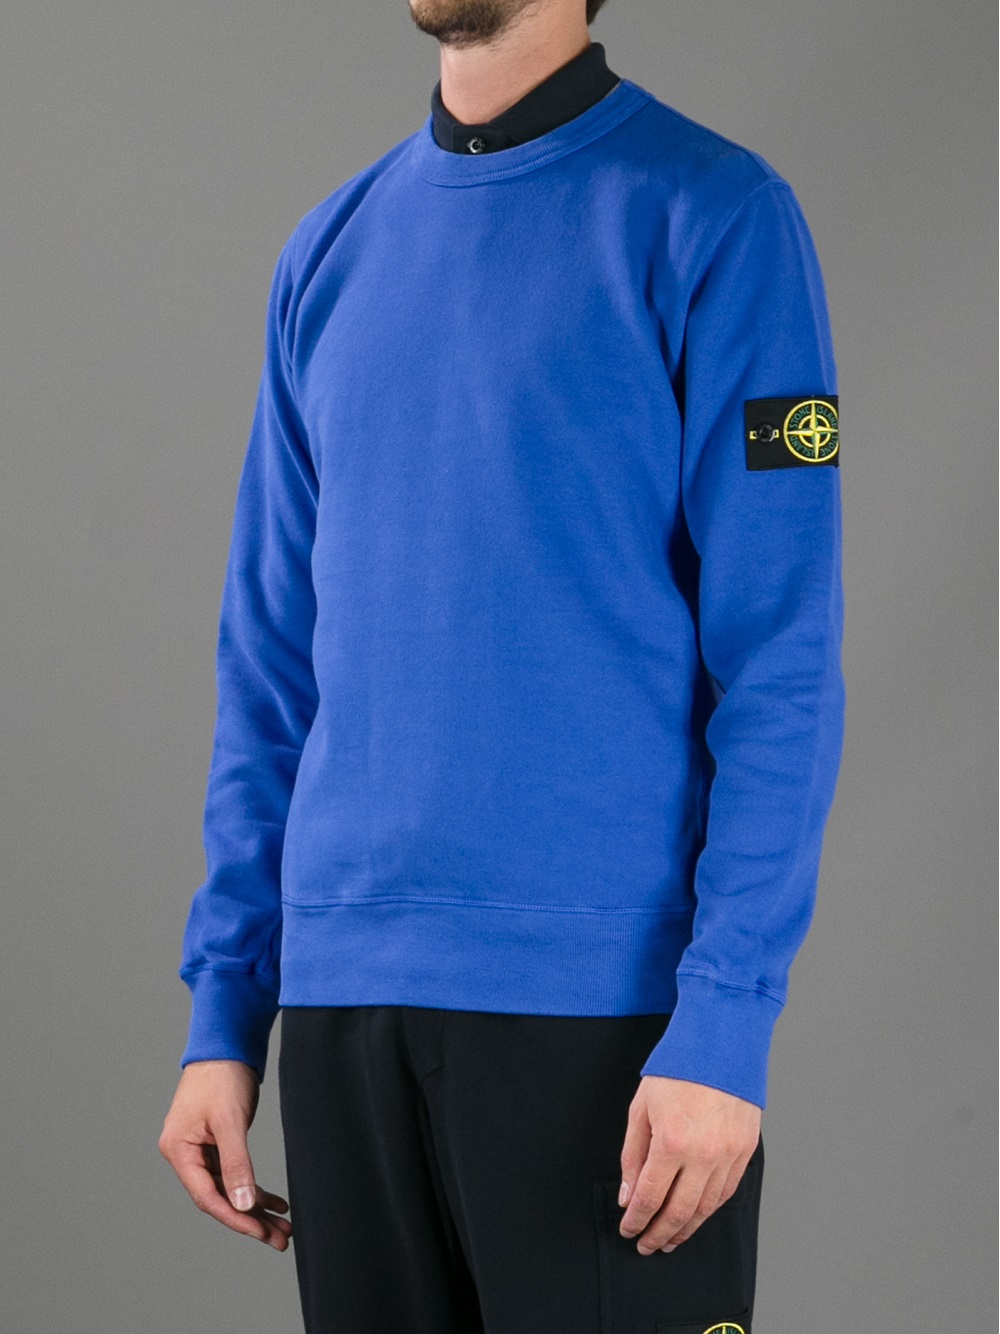 round neck sweatshirt - Blue Stone Island Under Sale Online iZe8xRcfr